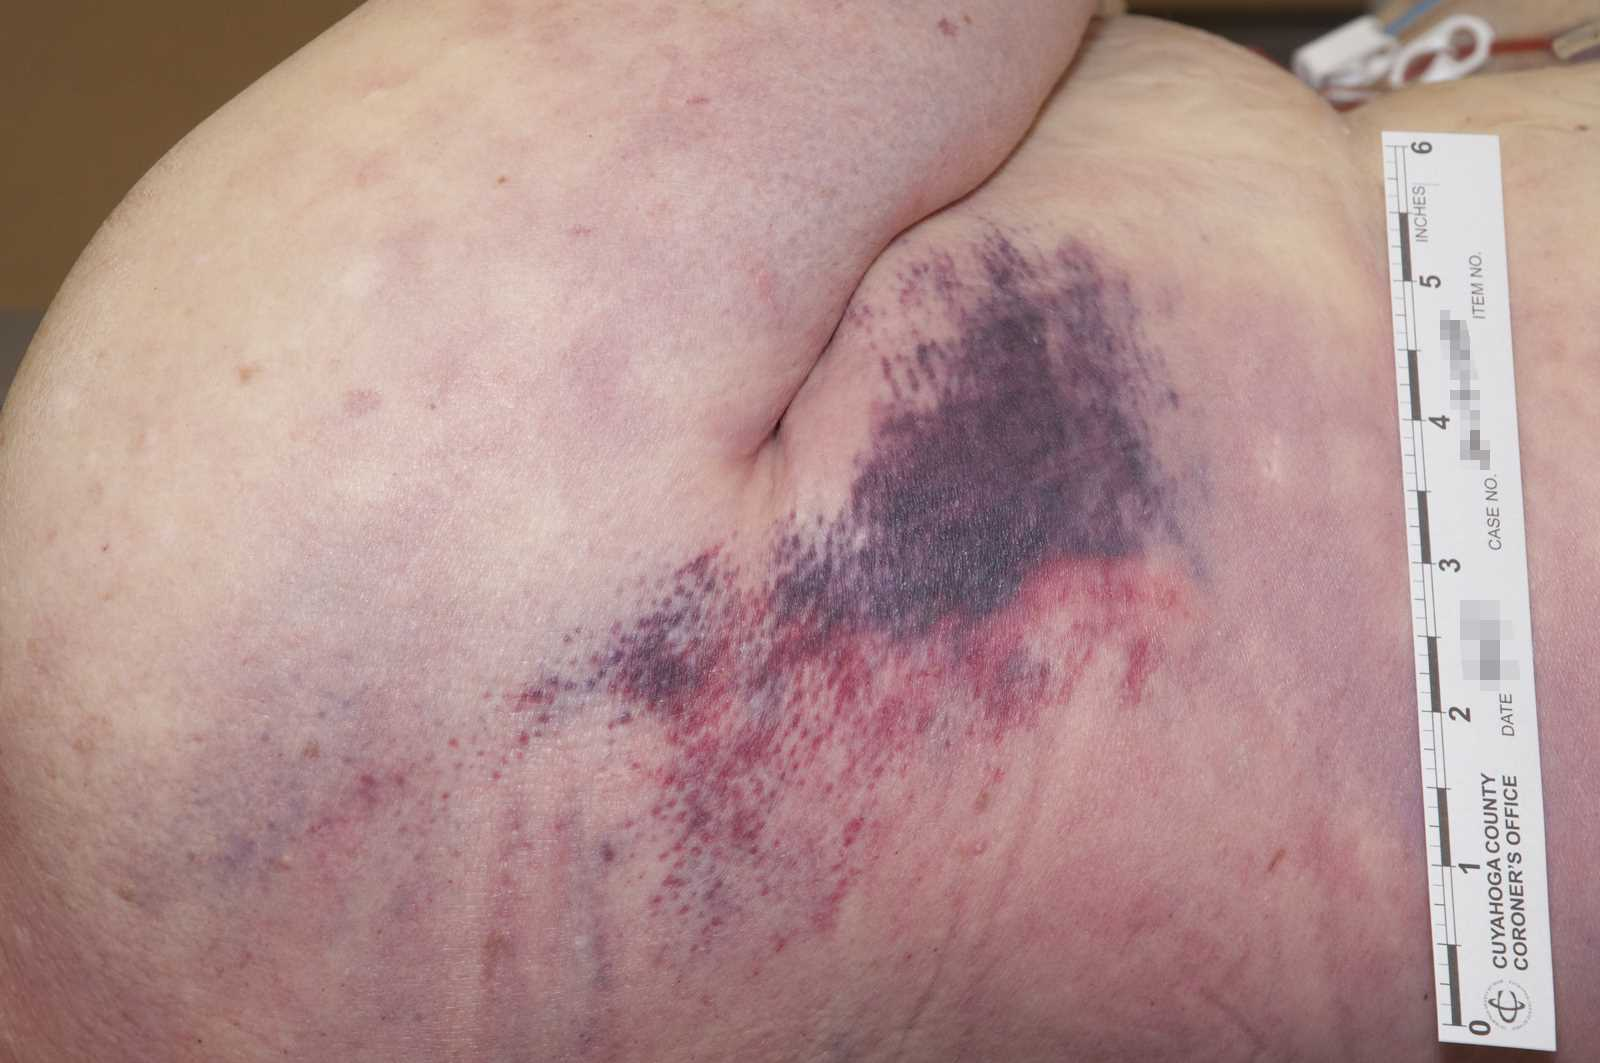 A recent red/purple contusion of the right lateral chest beneath the axilla.